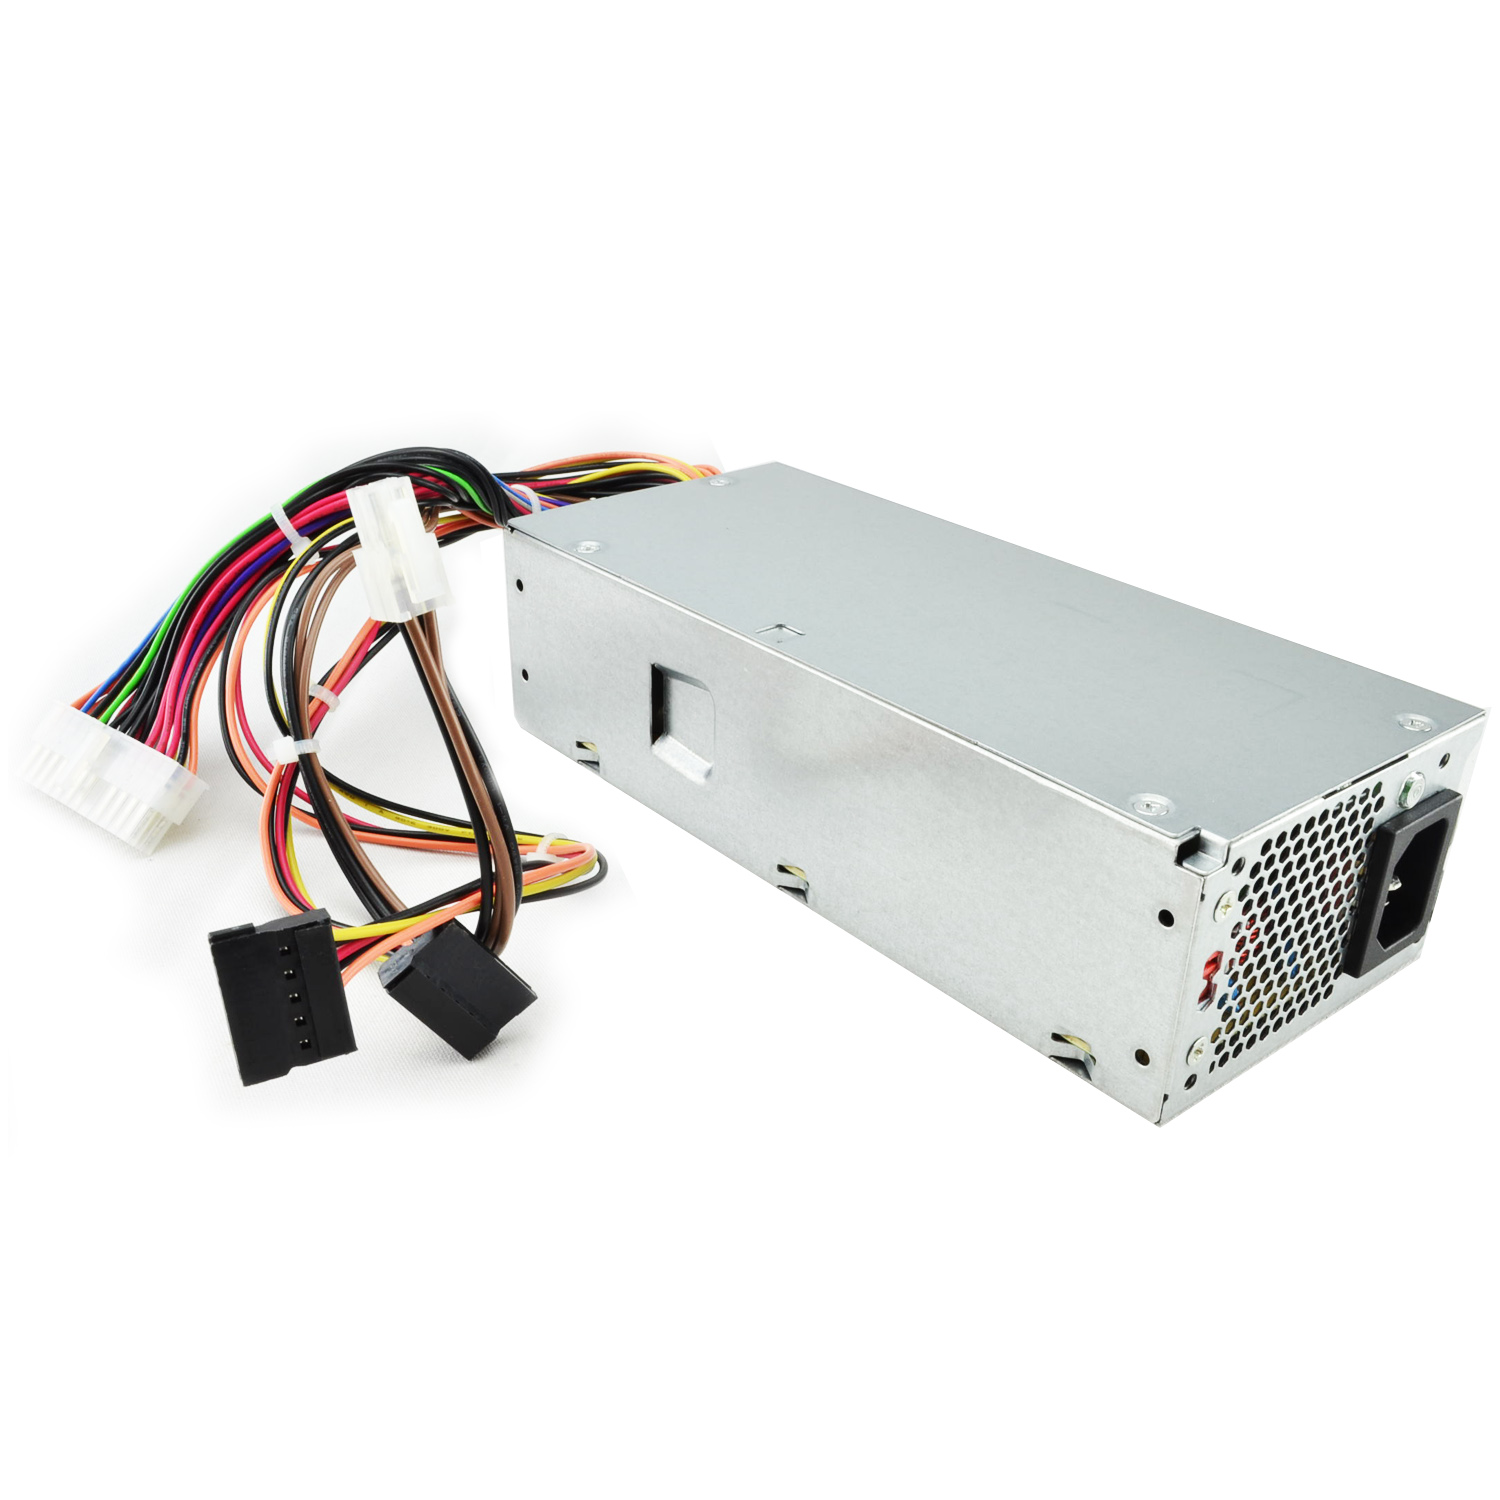 HP 220W Flex Power Supply 633195-001